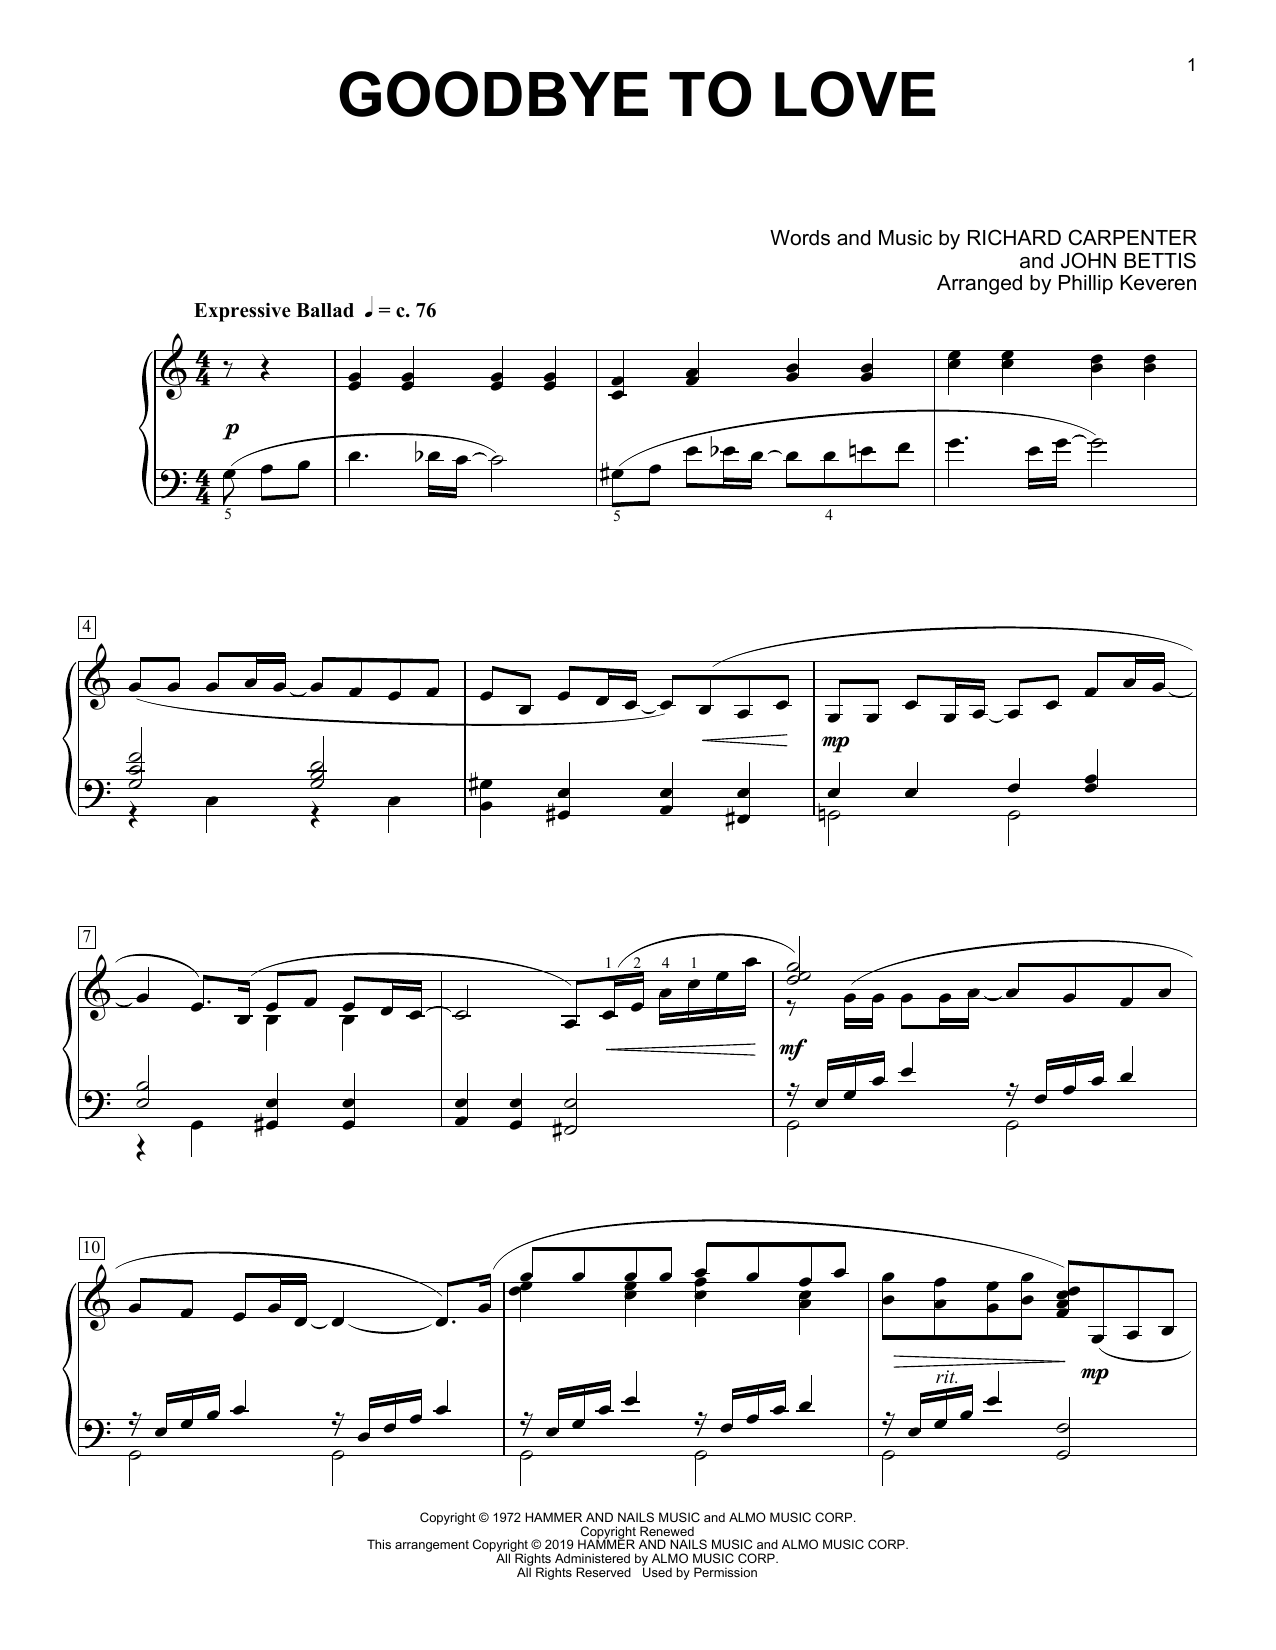 Carpenters Goodbye To Love (arr. Phillip Keveren) sheet music notes and chords. Download Printable PDF.